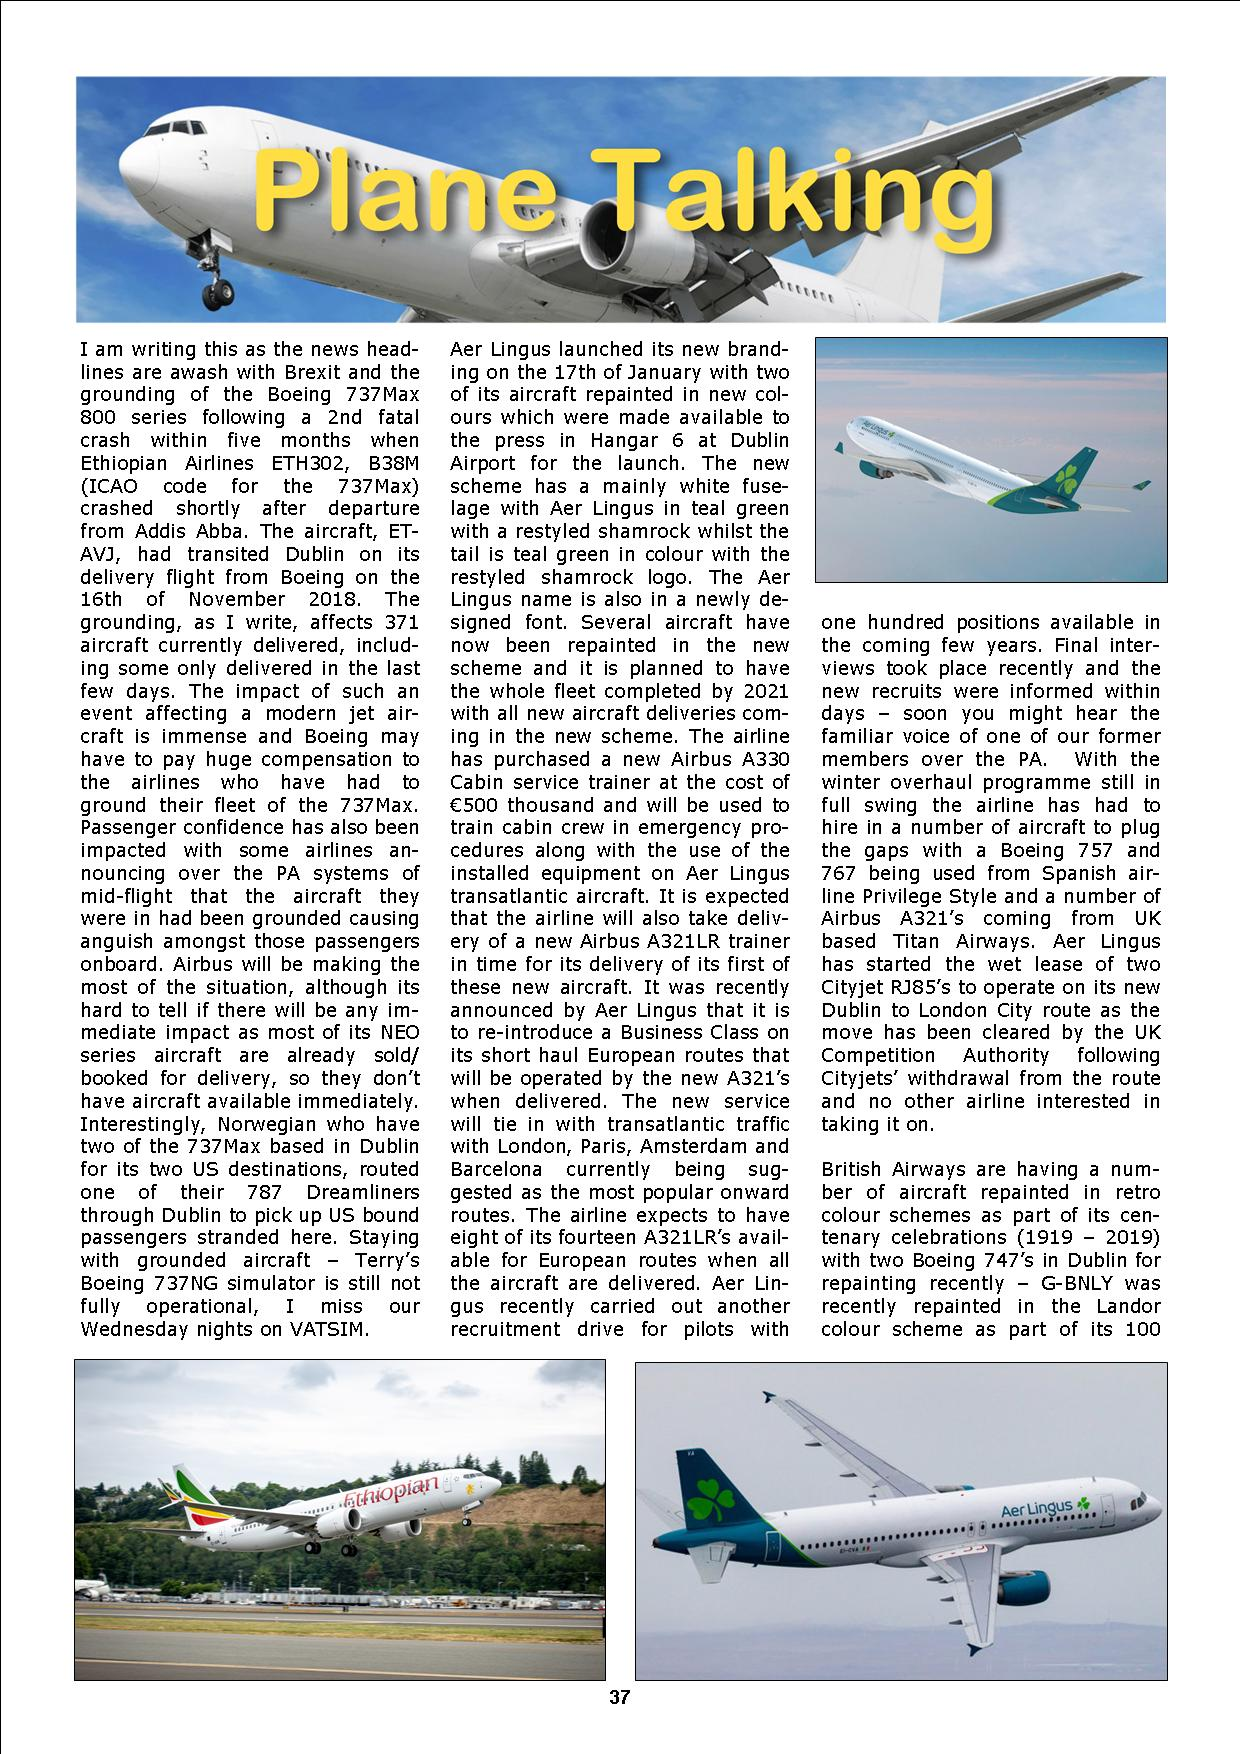 PC PILOTS IRELAND - PC FLIGHT MAGAZINE - MARCH 2019 ISSUE - FREE